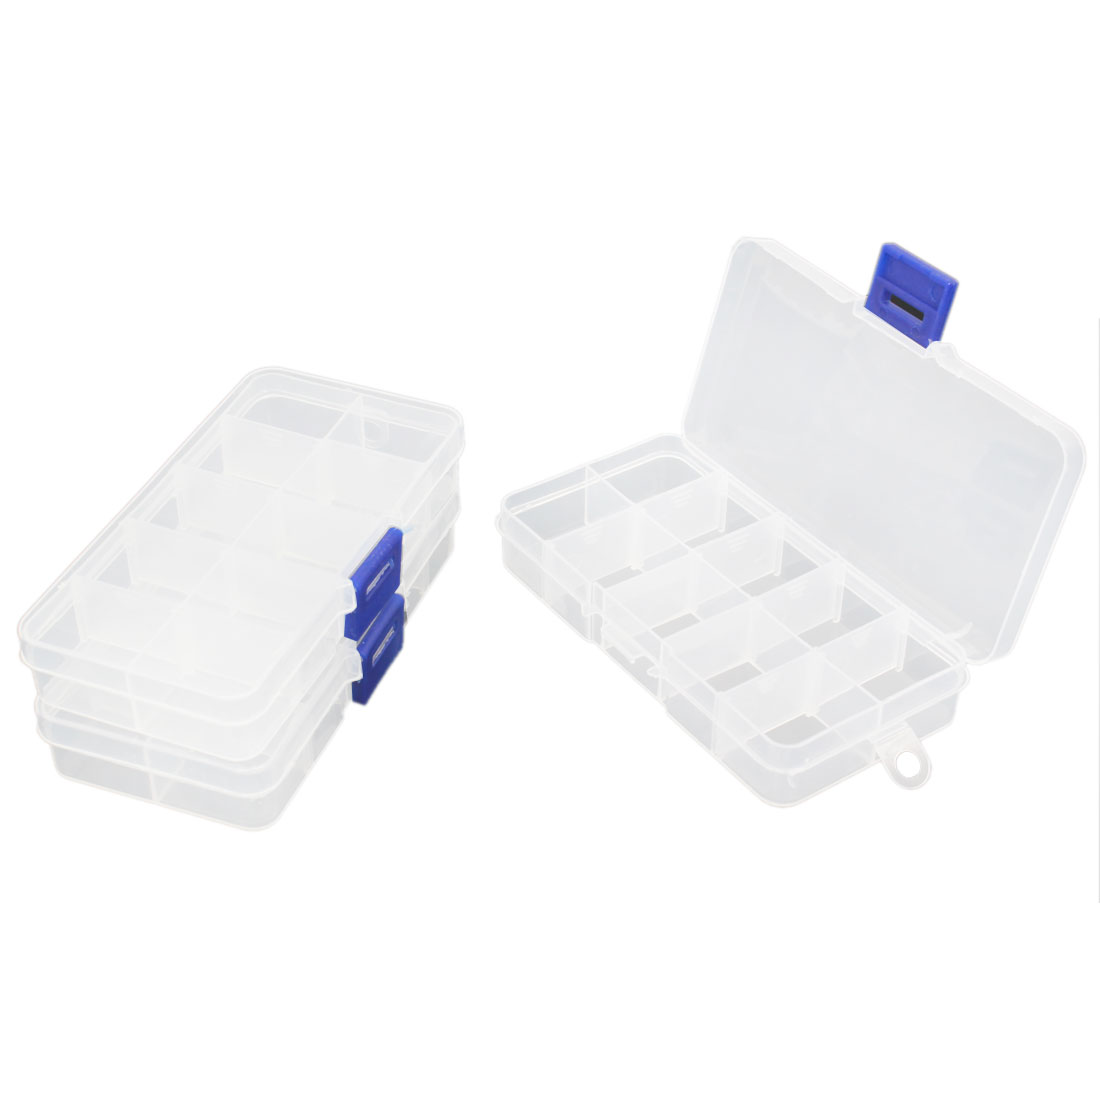 Clear White Plastic 10 Compartments Medicine Pills Storage Case Container 3pcs